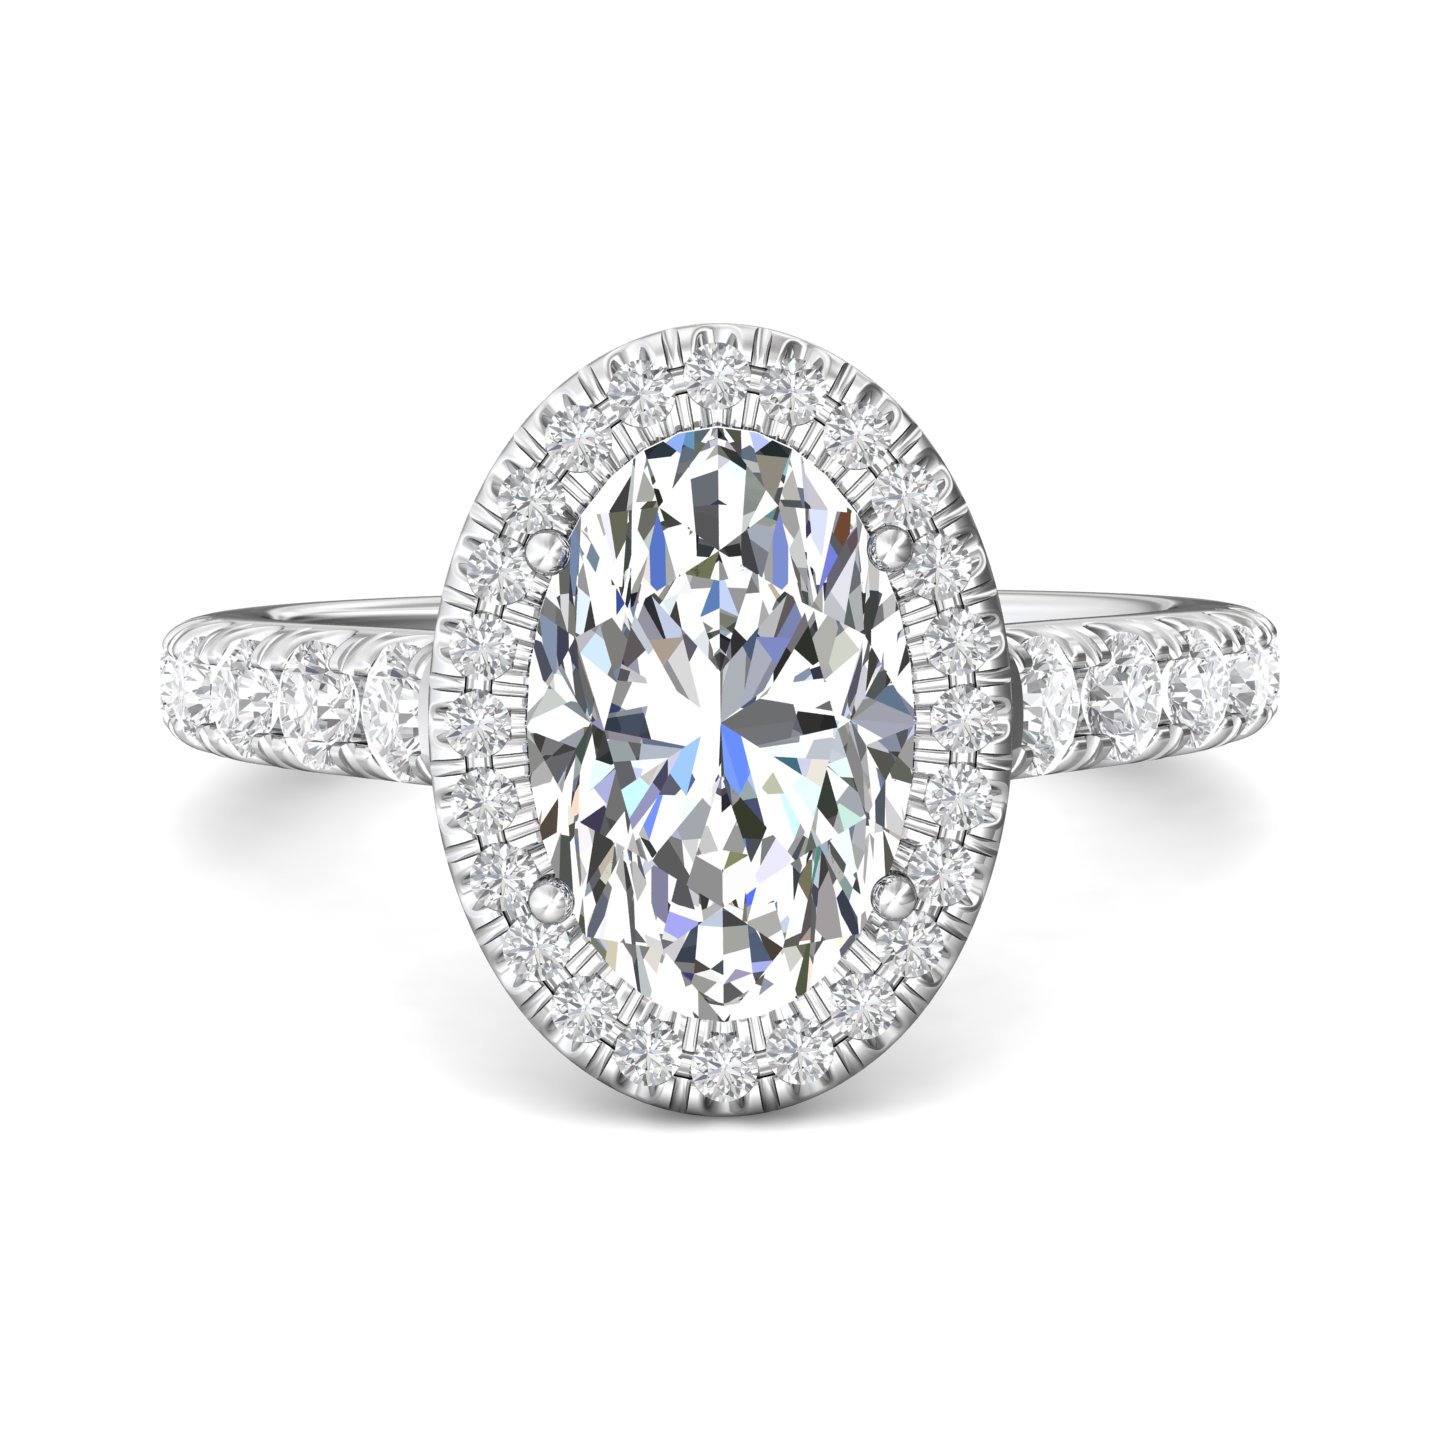 Rings - 14K White Gold FlyerFit Encore Engagement Ring